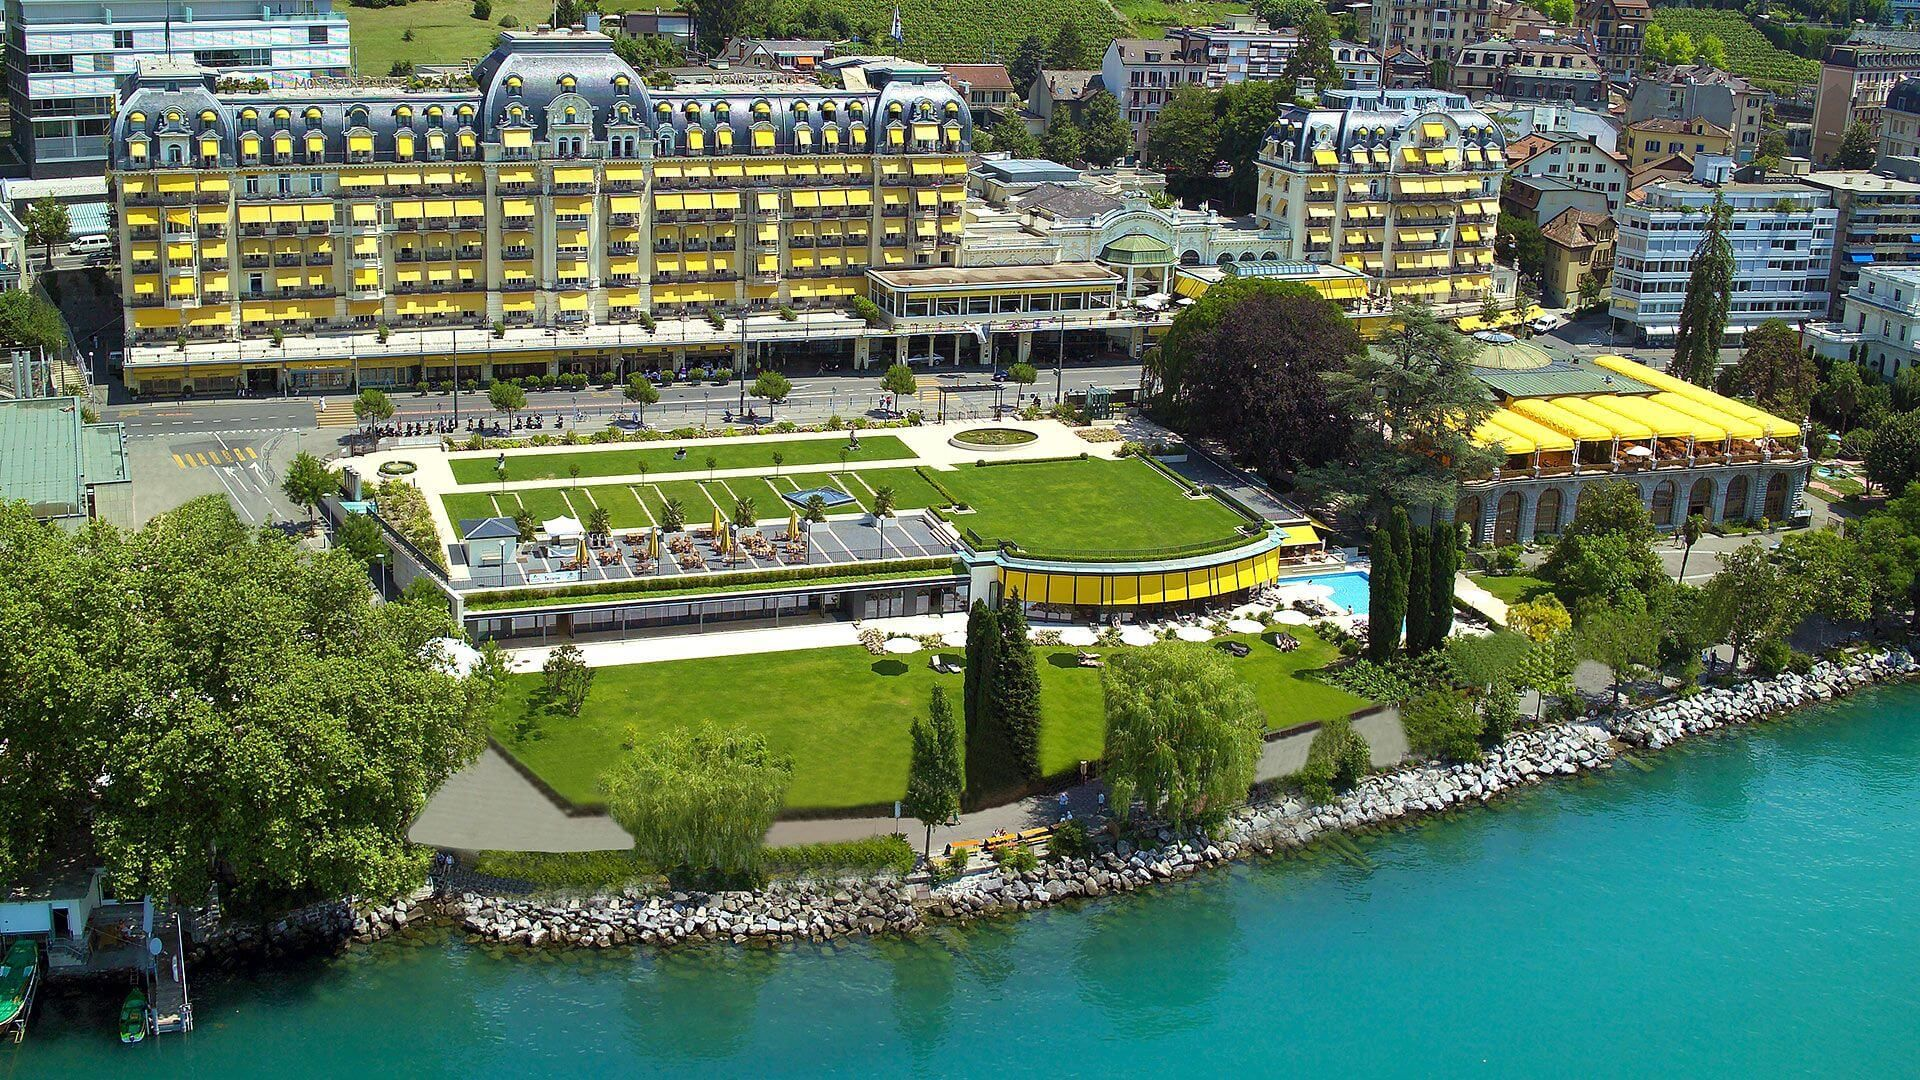 #Fairmont Le Montreux Palace #Montreux #Europe #Switzerland #Hotels #travel #travelblogger #travelgram #travelguide #travels #travelling #travelblog #traveladdict #traveladikkt #beautifuldestinations #bucketlist #luxury #luxurylifestyle #luxurytravel #luxurydestinations #lifestyle #lifestyleblogger #beautifulplaces #beautifulplace #beautiful #beautifuldestination